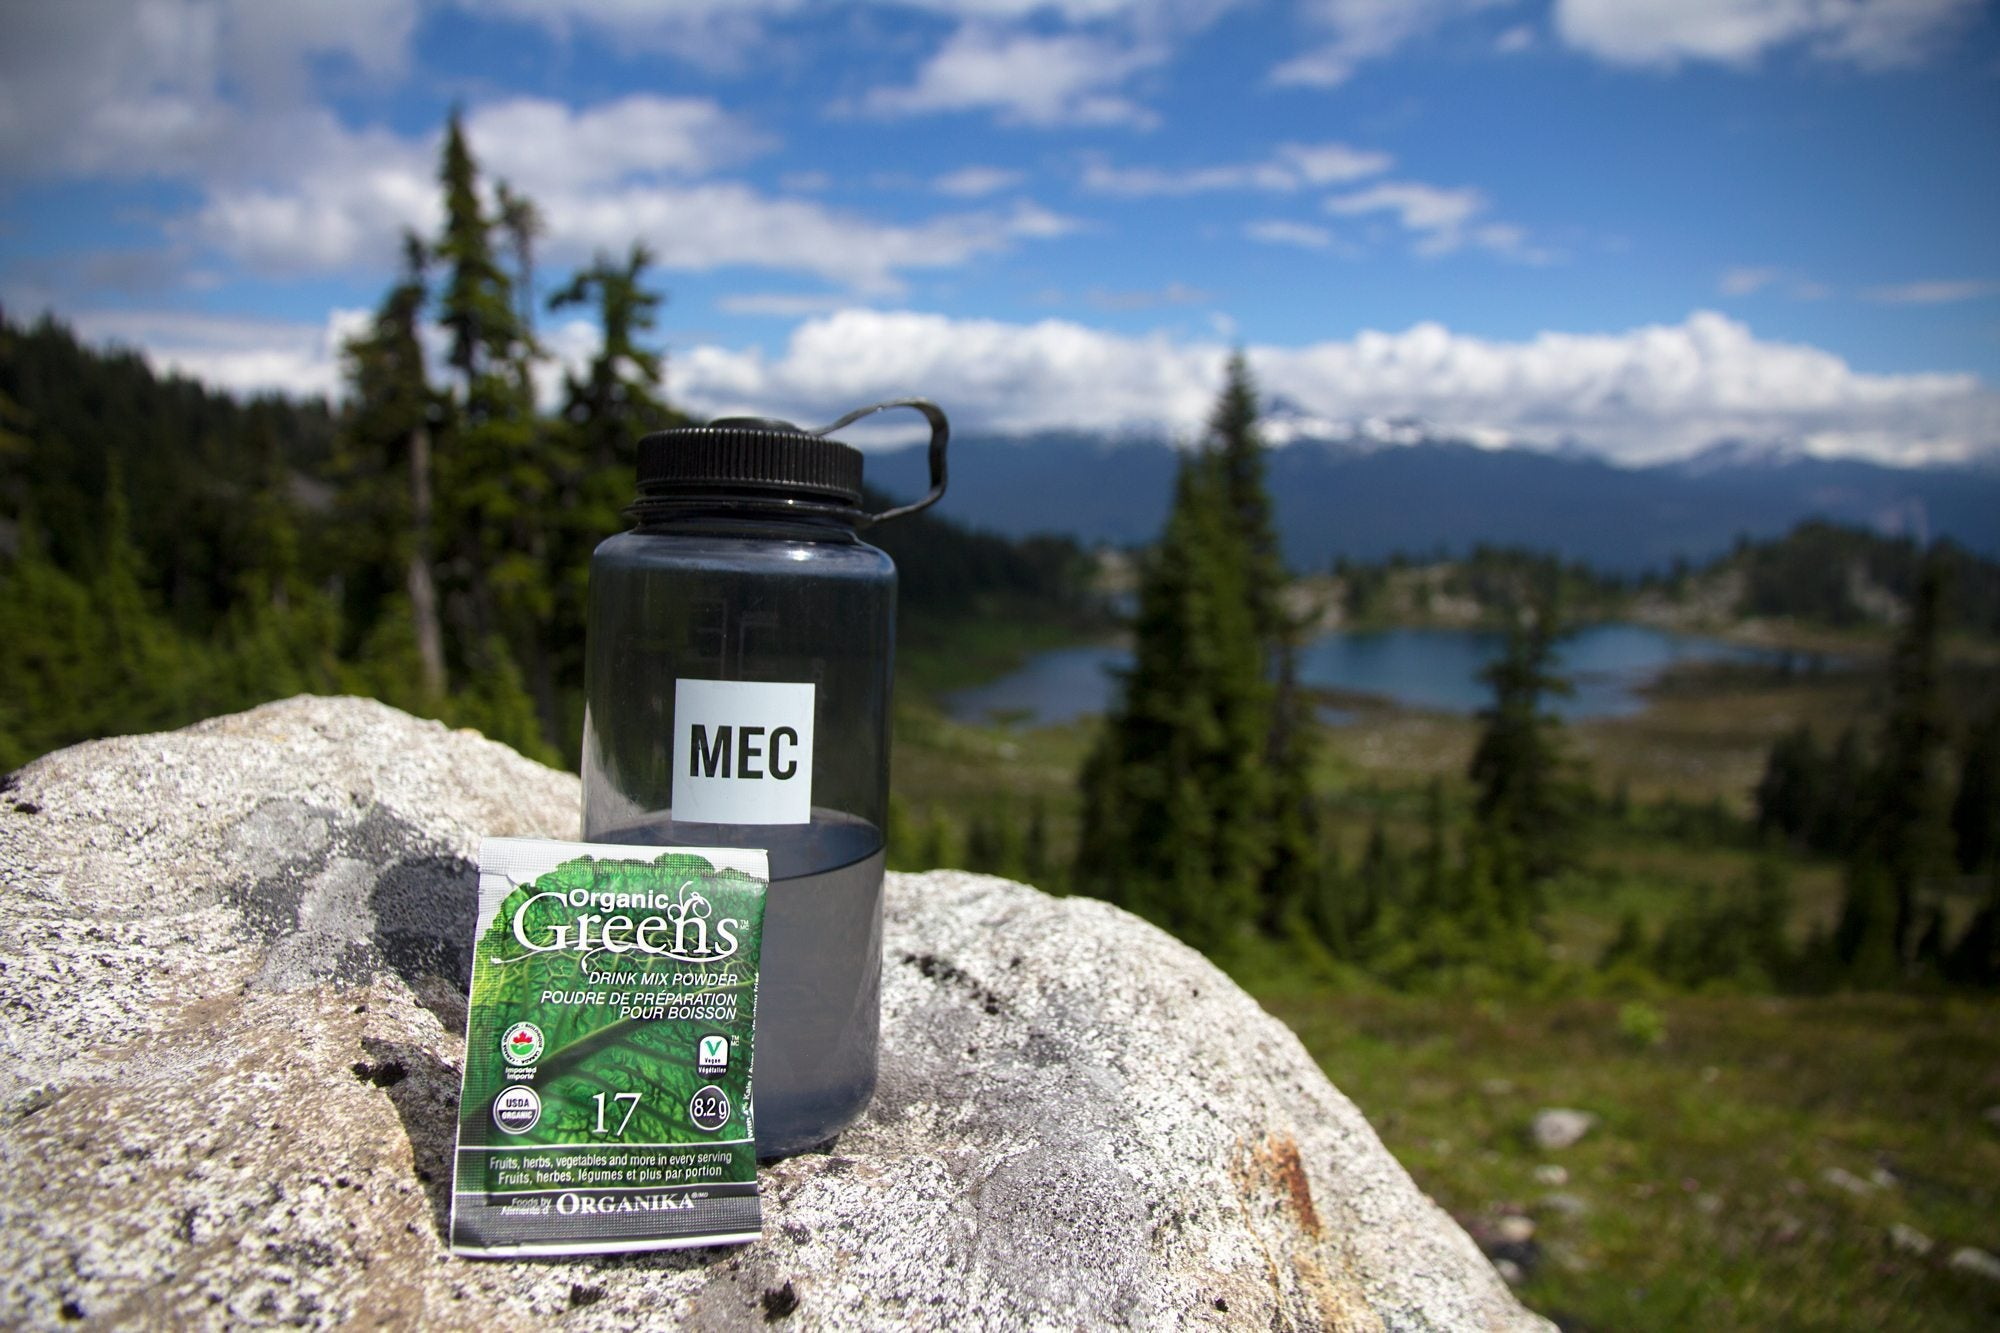 greens on the go is a great healthy road trip snack